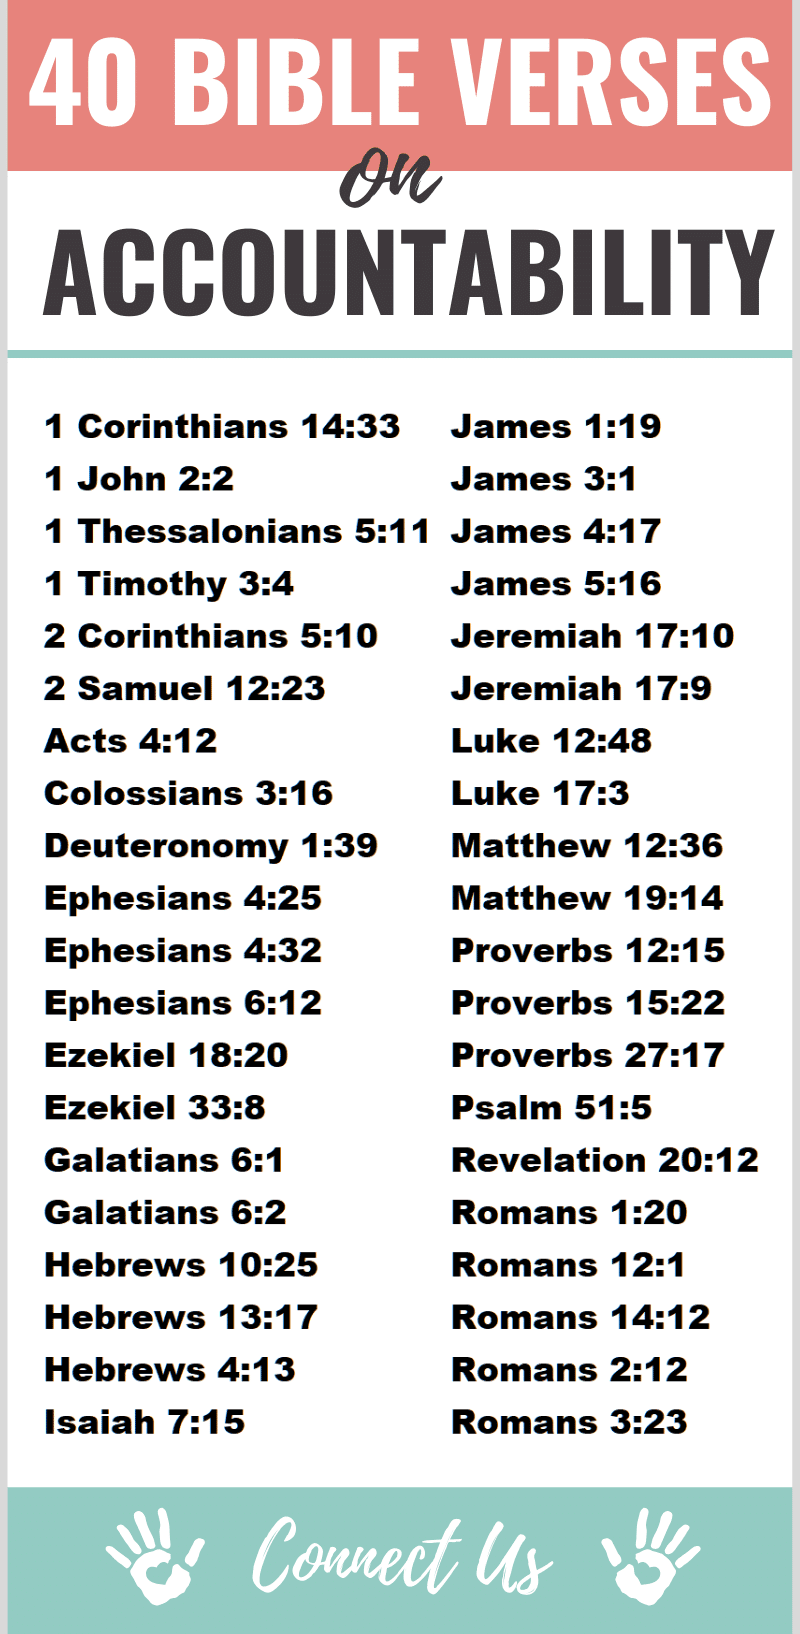 Bible Verses on Accountability